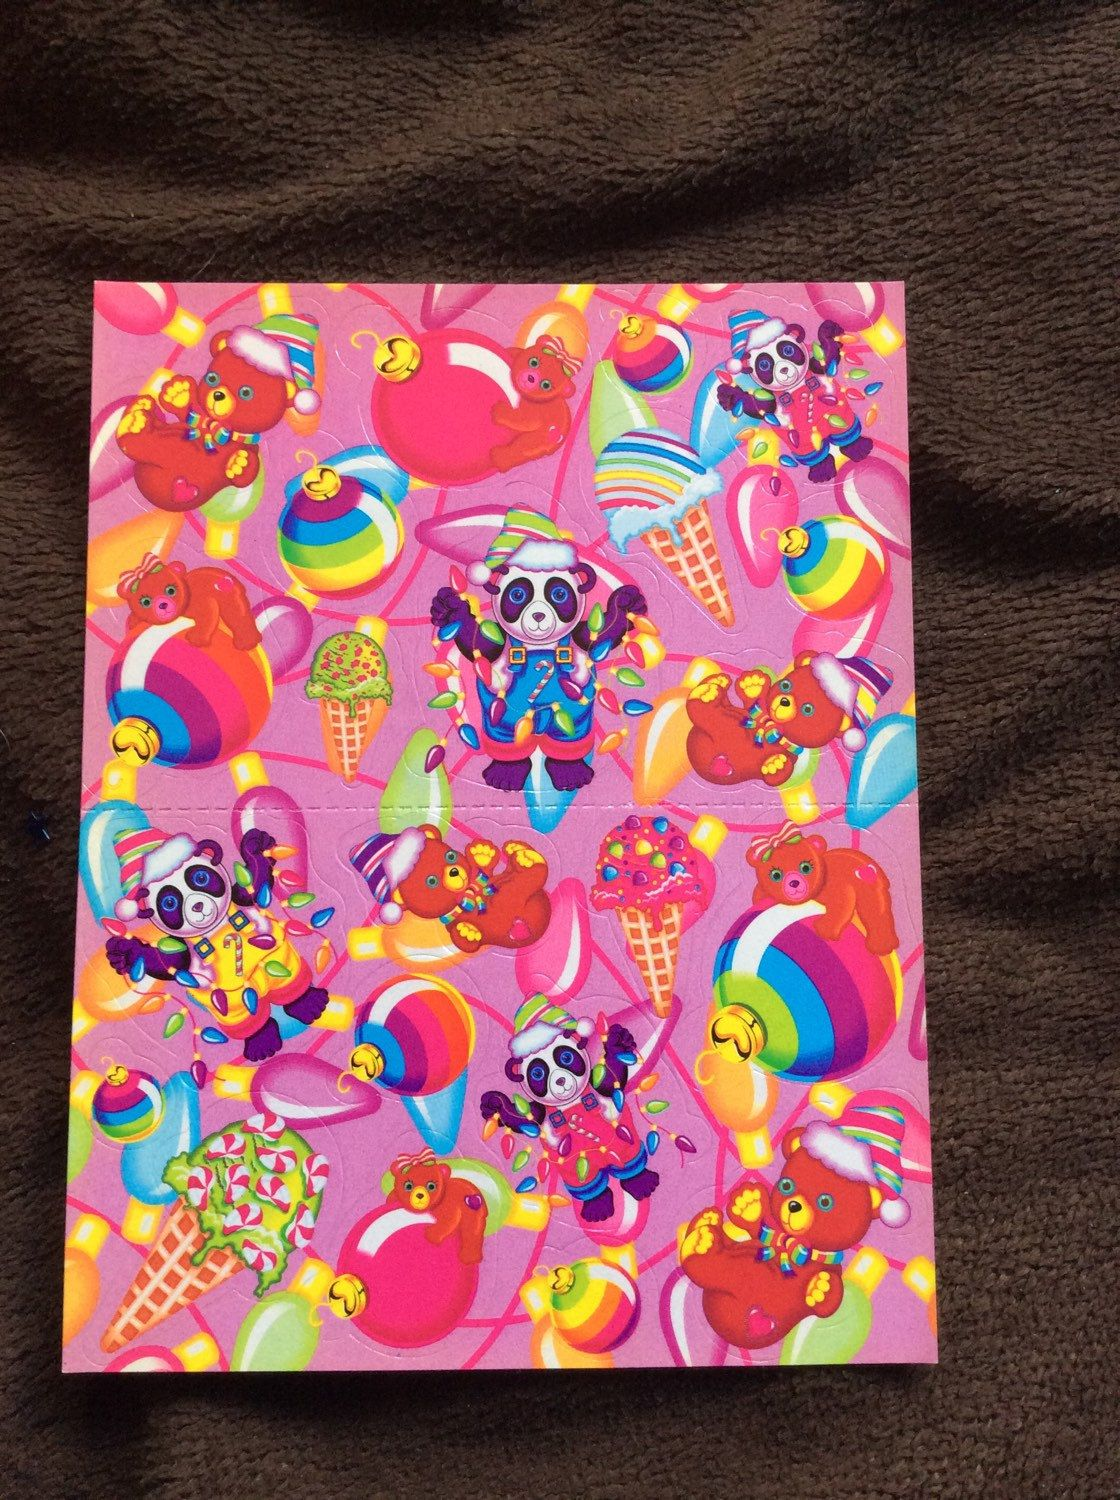 2 Sheets Of Vintage Lisa Frank Stickers 1 Sheet Is Christmas Bears And The Other A Multi Characters Valentines Day Sticker Please Look